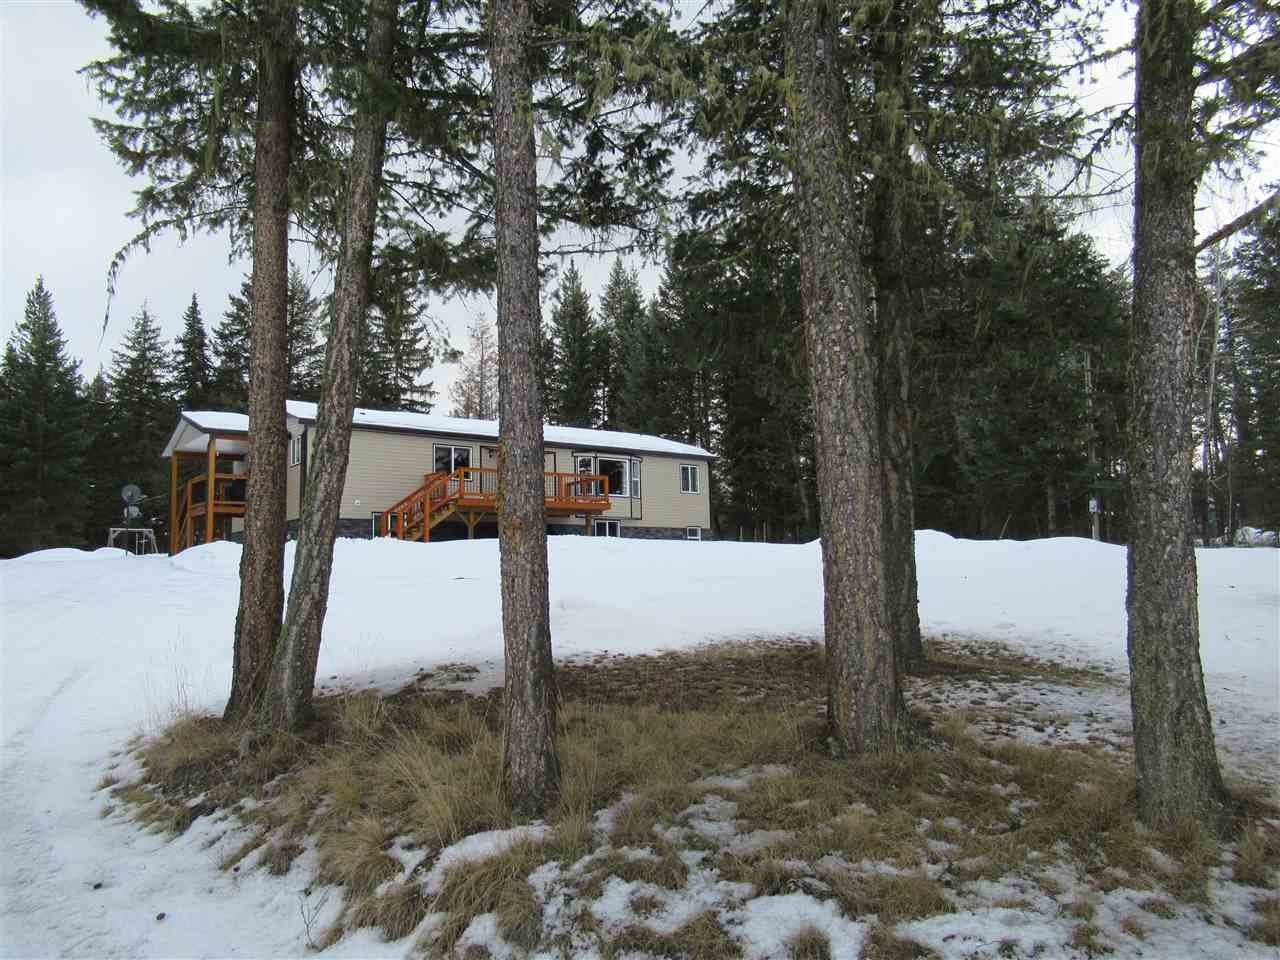 Main Photo: 3084 PIGEON Road: 150 Mile House Manufactured Home for sale (Williams Lake (Zone 27))  : MLS®# R2442650